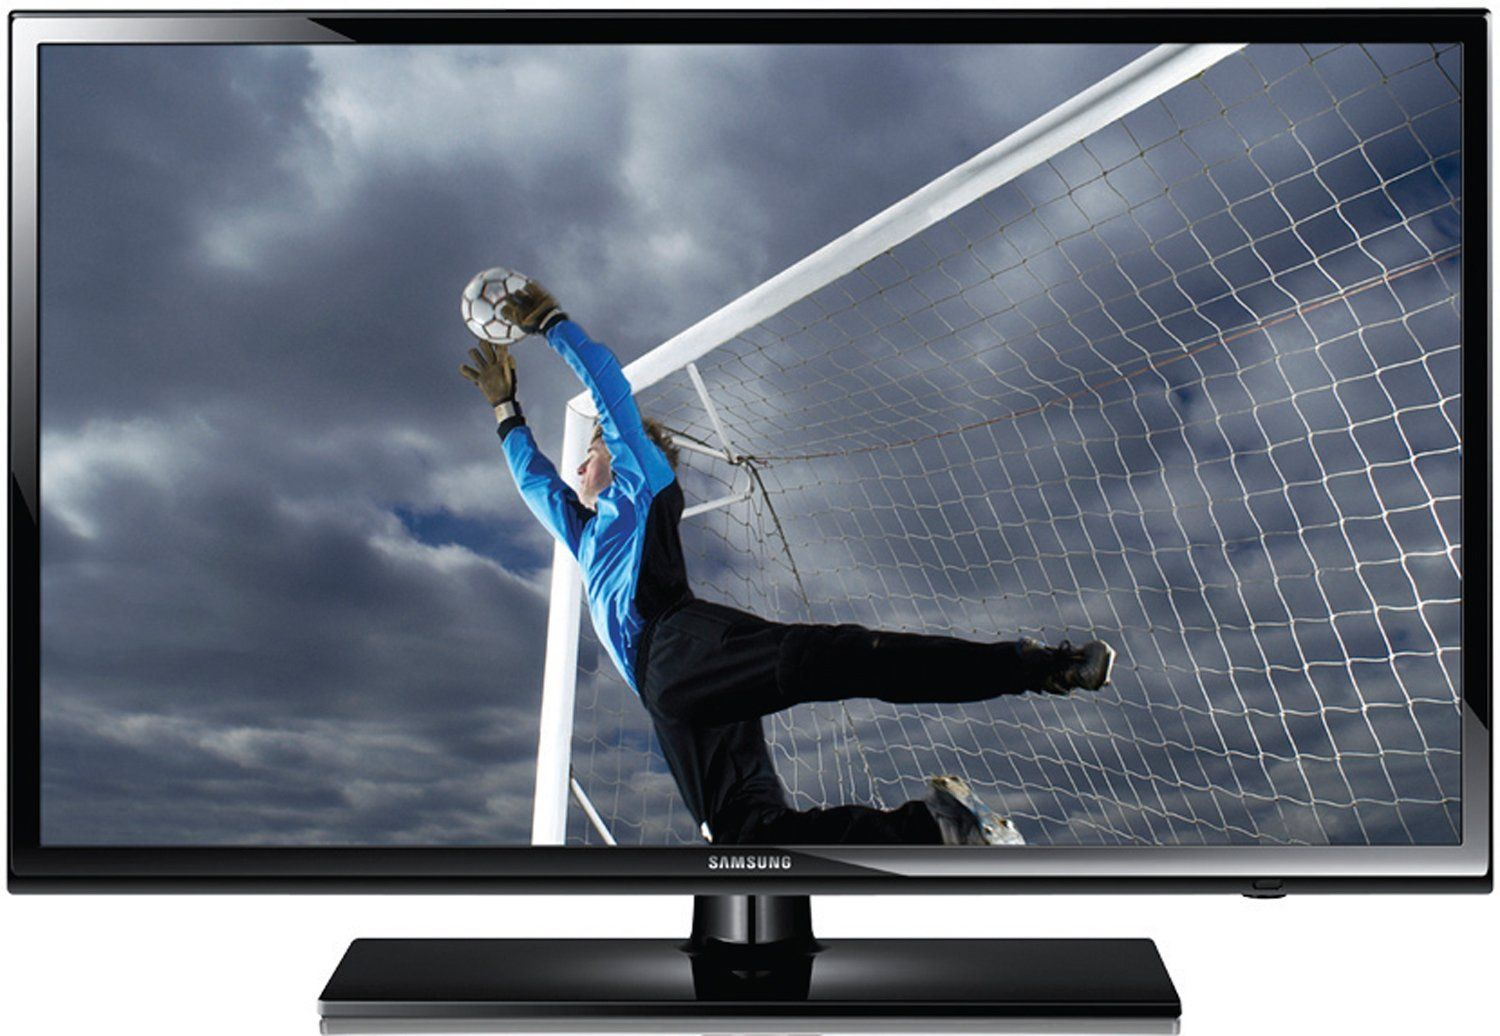 Samsung Un32eh4003 32 Inch 720p 60hz Led Tv 2012 Model Led Tv Lcd Television Tv Without Stand